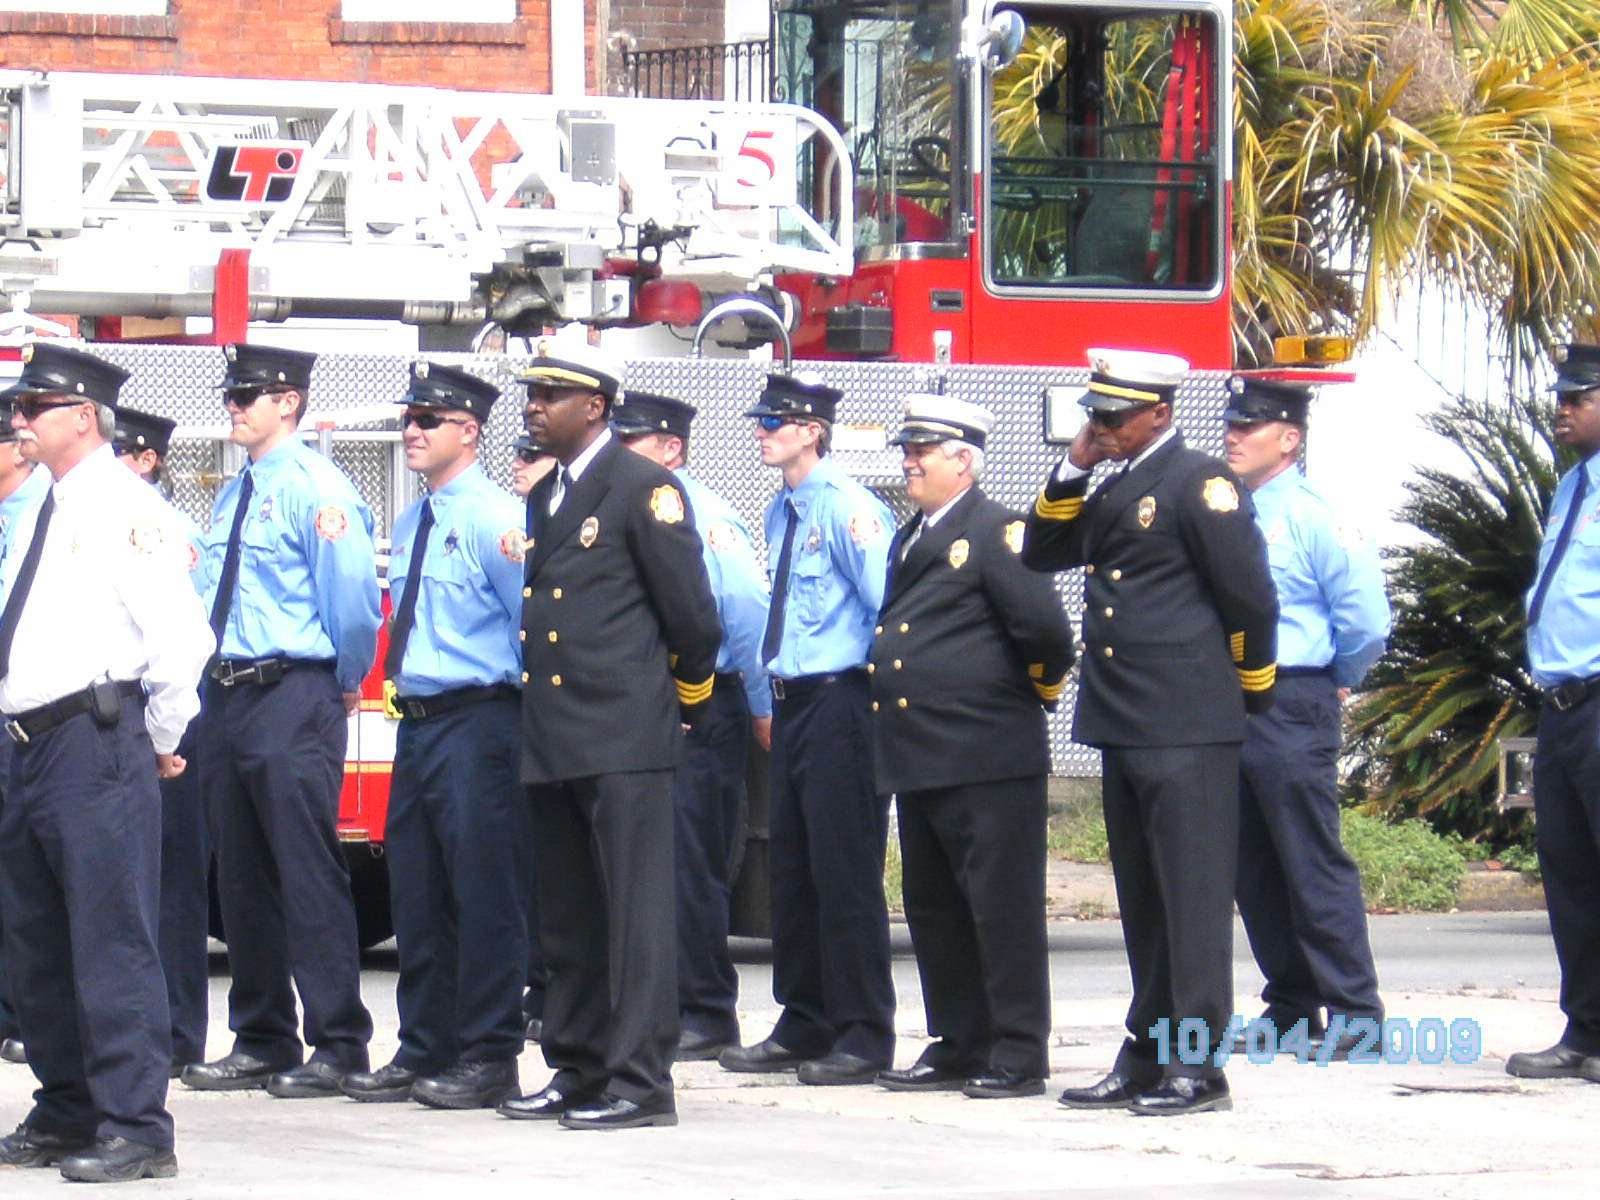 Ben Morse - Some of the brave men of SFFD.